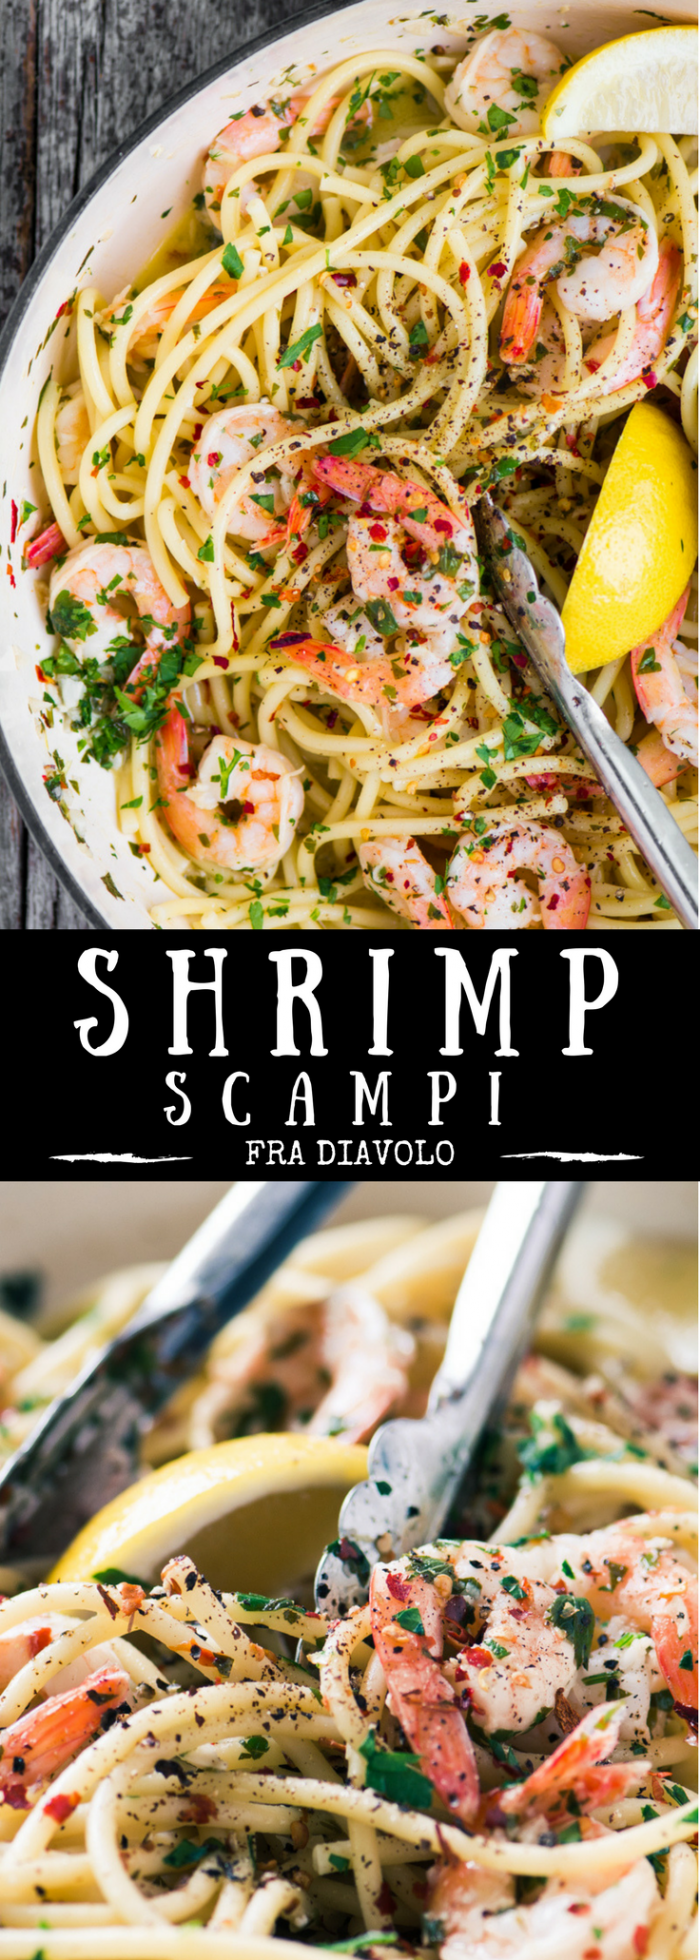 Shrimp Scampi Fra Diavolo ~ this fiery romantic dish can be whipped up in 30 minutes with a bag of frozen shrimp and pantry staples. This is the best shrimp scampi recipe I've tried, and also the easiest. #30minutemeal #shrimp #pasta #spicypasta #shrimprecipe #pastawithshrimp #bestshrimprecipe #easydinner #bestscampi #shrimpscampi #healthydinner #shellfish #fish